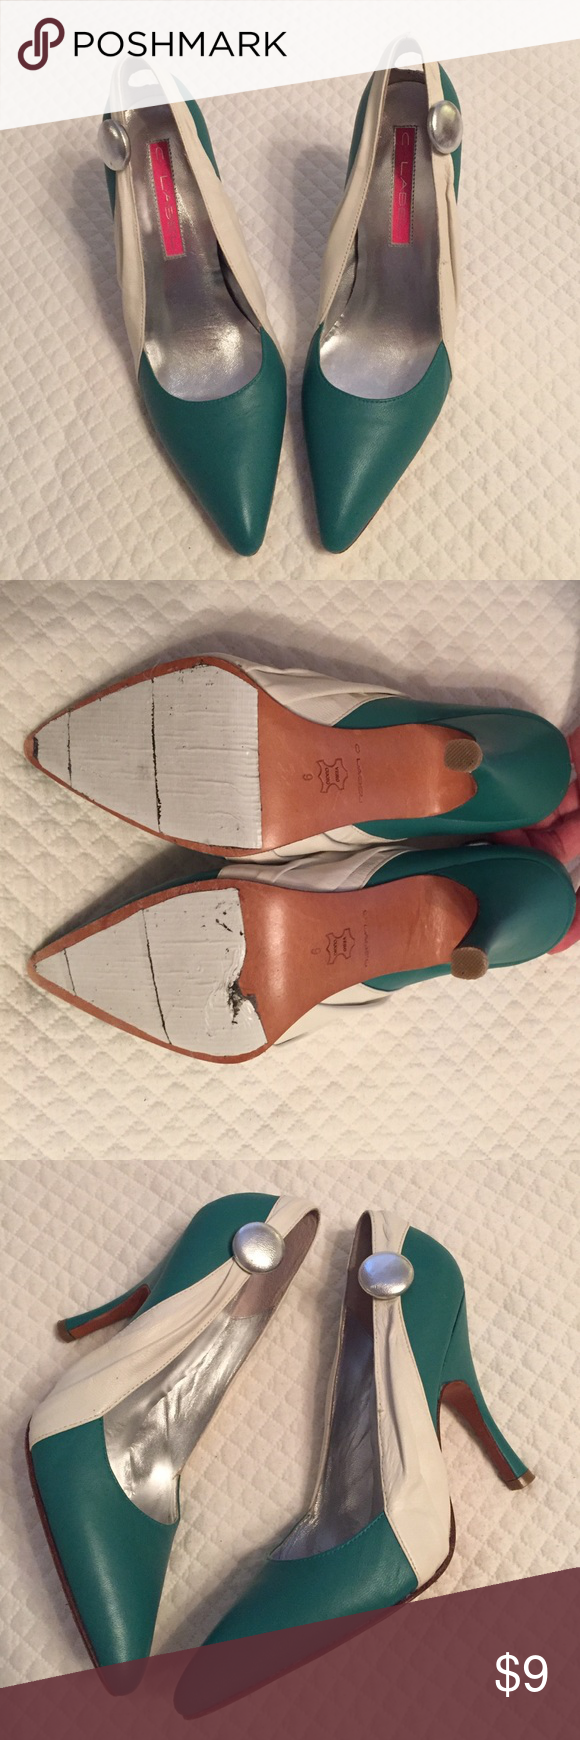 Turquoise - Favorite Heels! These are my absolute favorite heels ever - super stylish, with off white and turquoise- green in color… Stylish and great for a pop of color… I added duck taped to the bottom for traction as there was none. In like new condition barely worn… Colors are true to the picture. Sad to let these go! C Label Shoes Heels